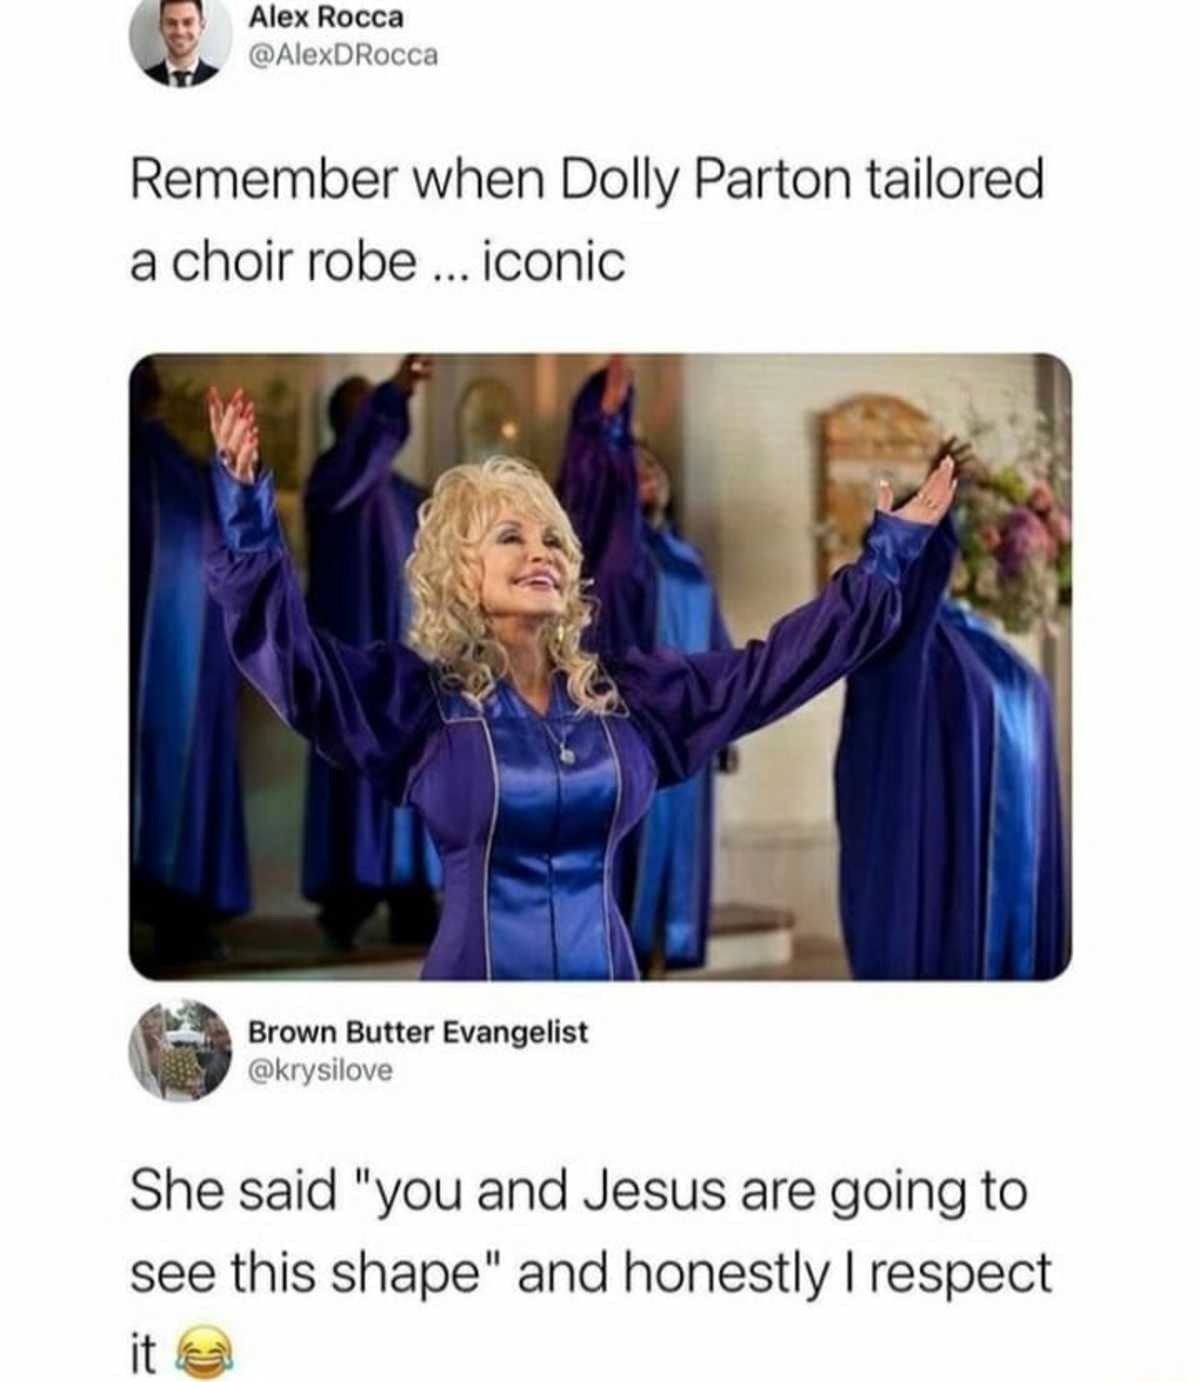 reliable designing ignorant Dugong. .. Goddamn I love Dolly Parton and not only because of those well sized mammaries